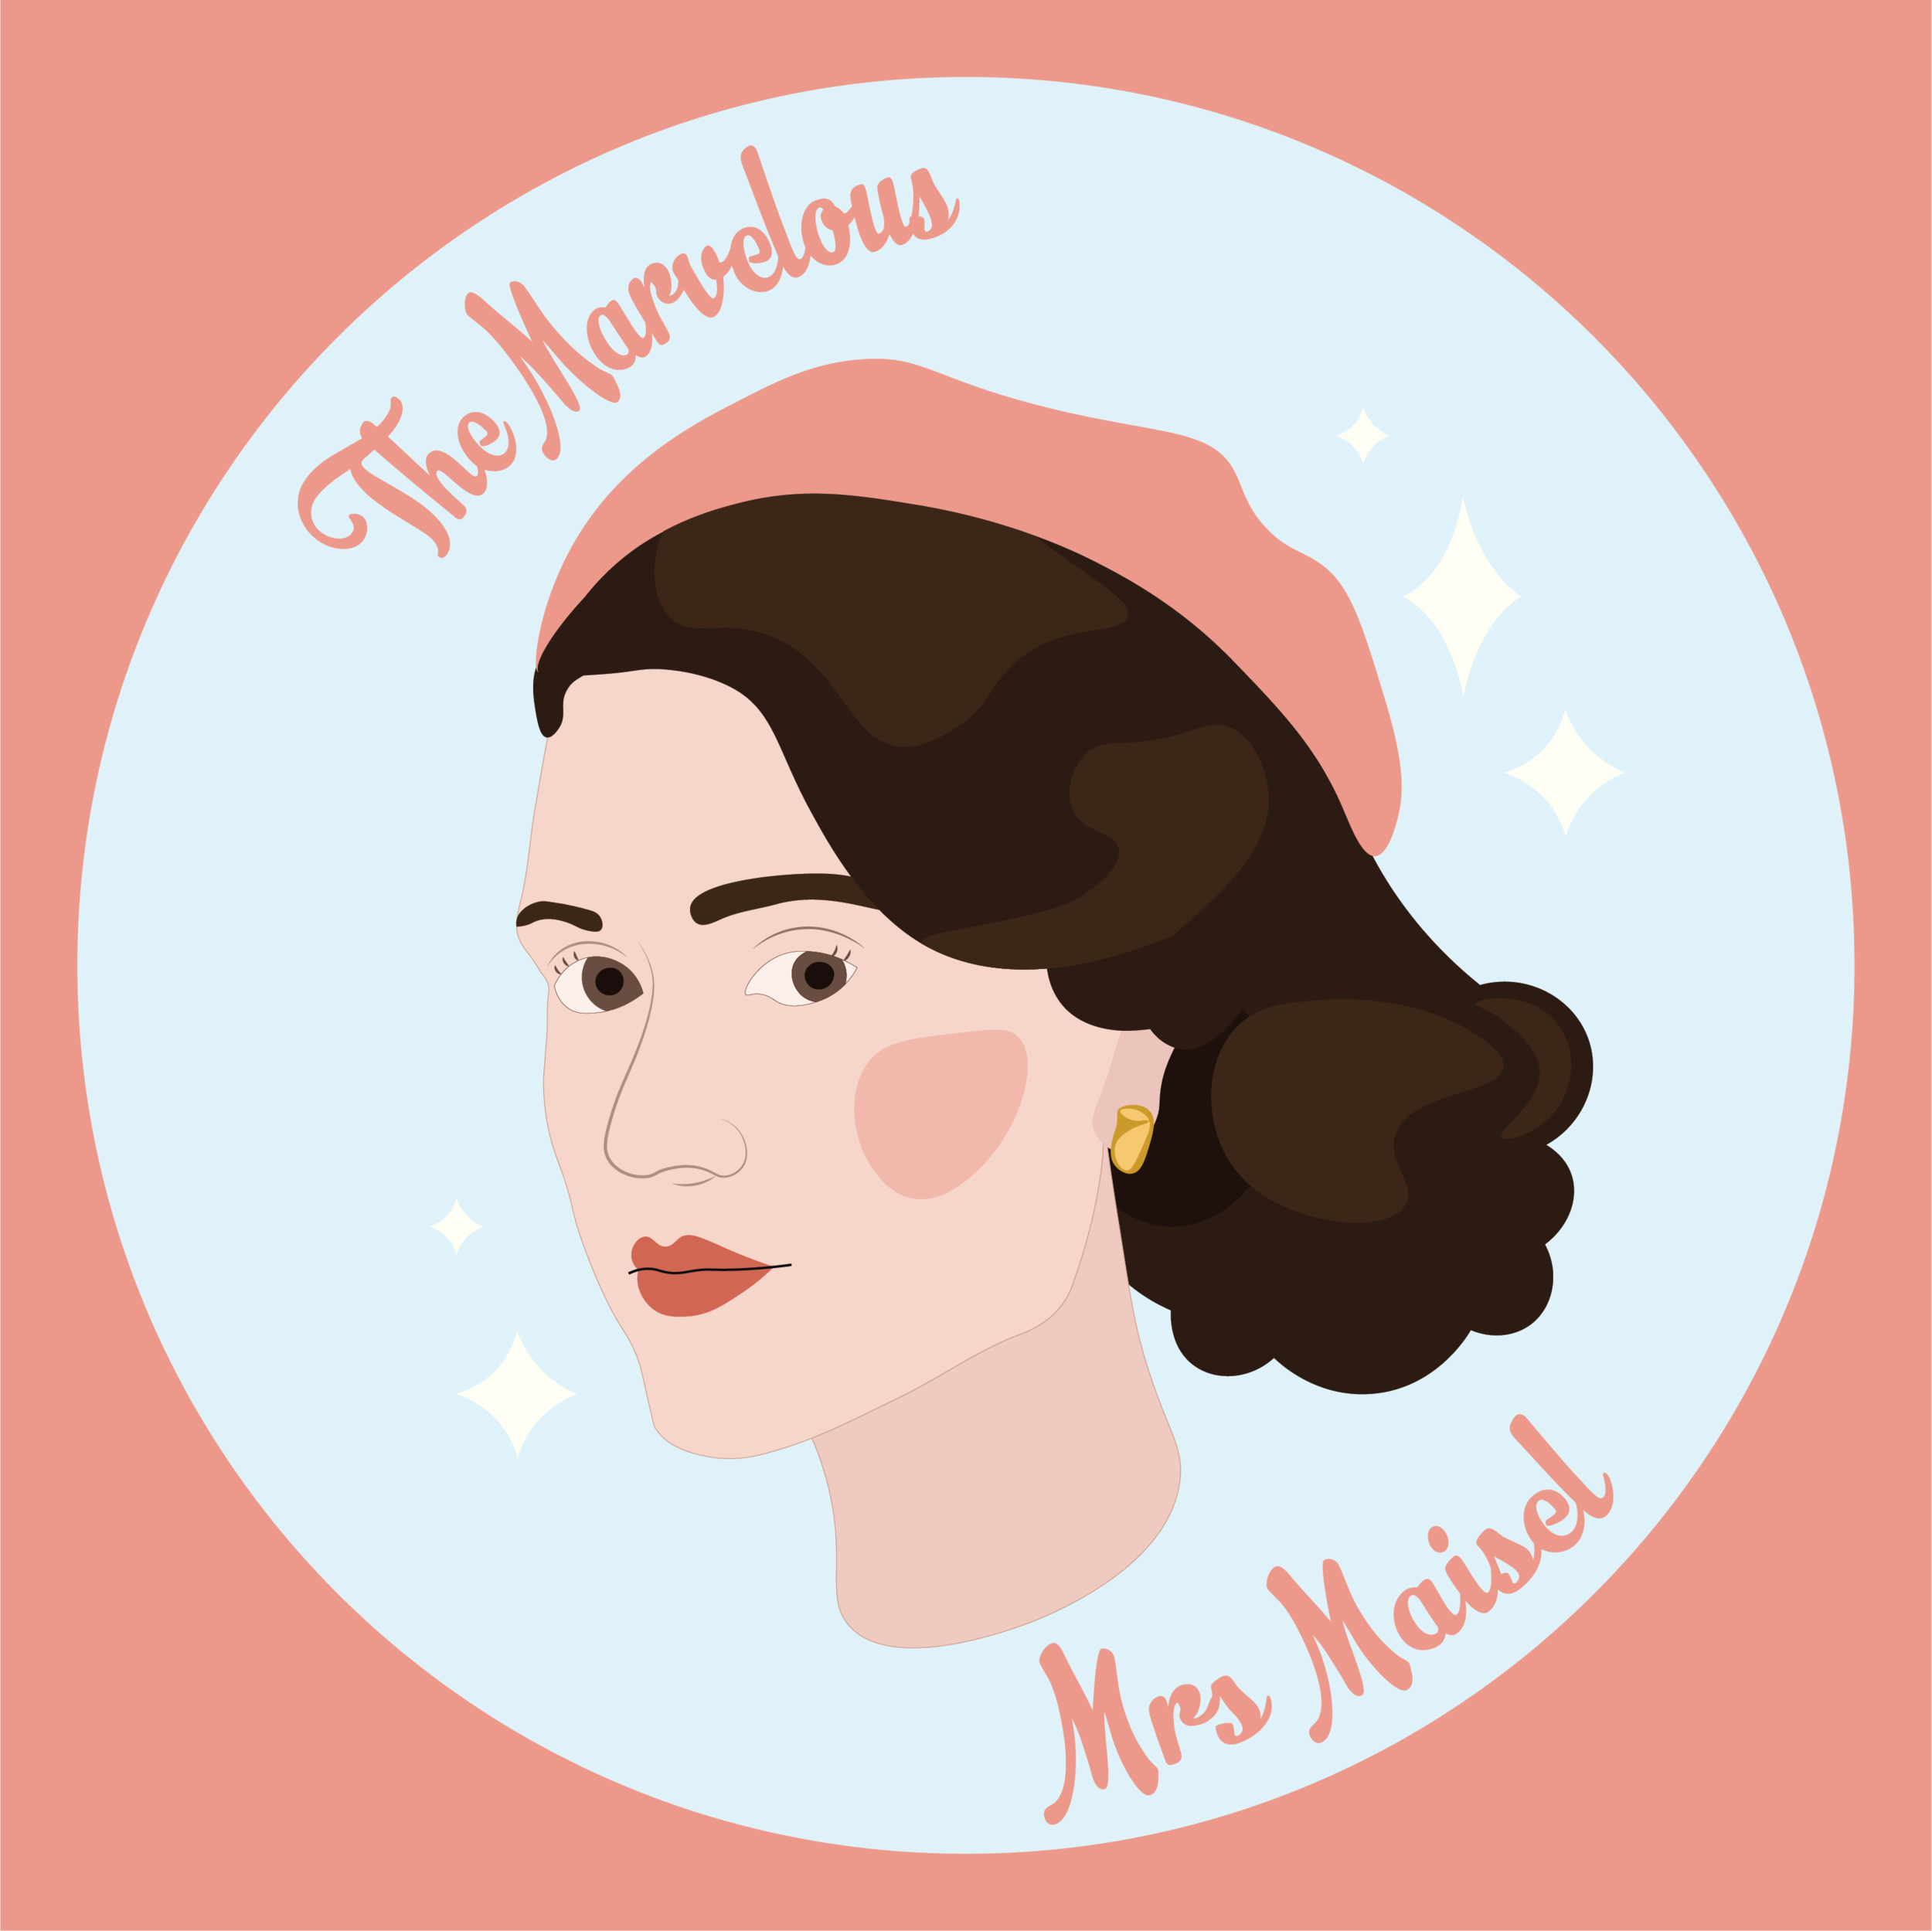 mrs maisel-04.png